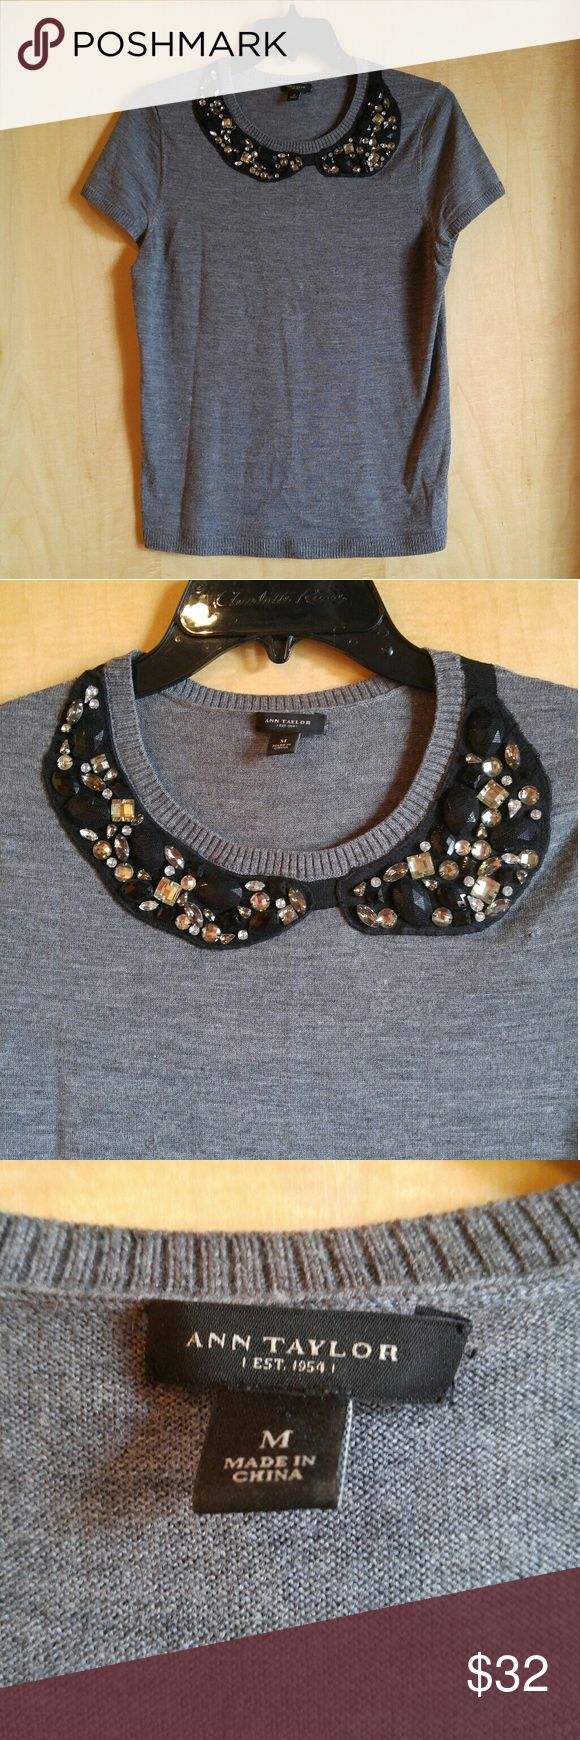 """Ann Taylor Gray Embellished Bib Wool Sweater Tee Ann Taylor top, size medium, in excellent condition save for two spots of discoloration shown in photo. May come out--I haven't tried to remove them. Asymmetrical black bib with silver stones and tie detail at back of neck. Thicker knit sweater material. Would look great tucked into a skirt! 18"""" pit to pit, 25"""" length. 100% extrafine merino wool. Please ask any questions. No trades. Make a reasonable offer. Thanks! Ann Taylor Tops Blouses"""